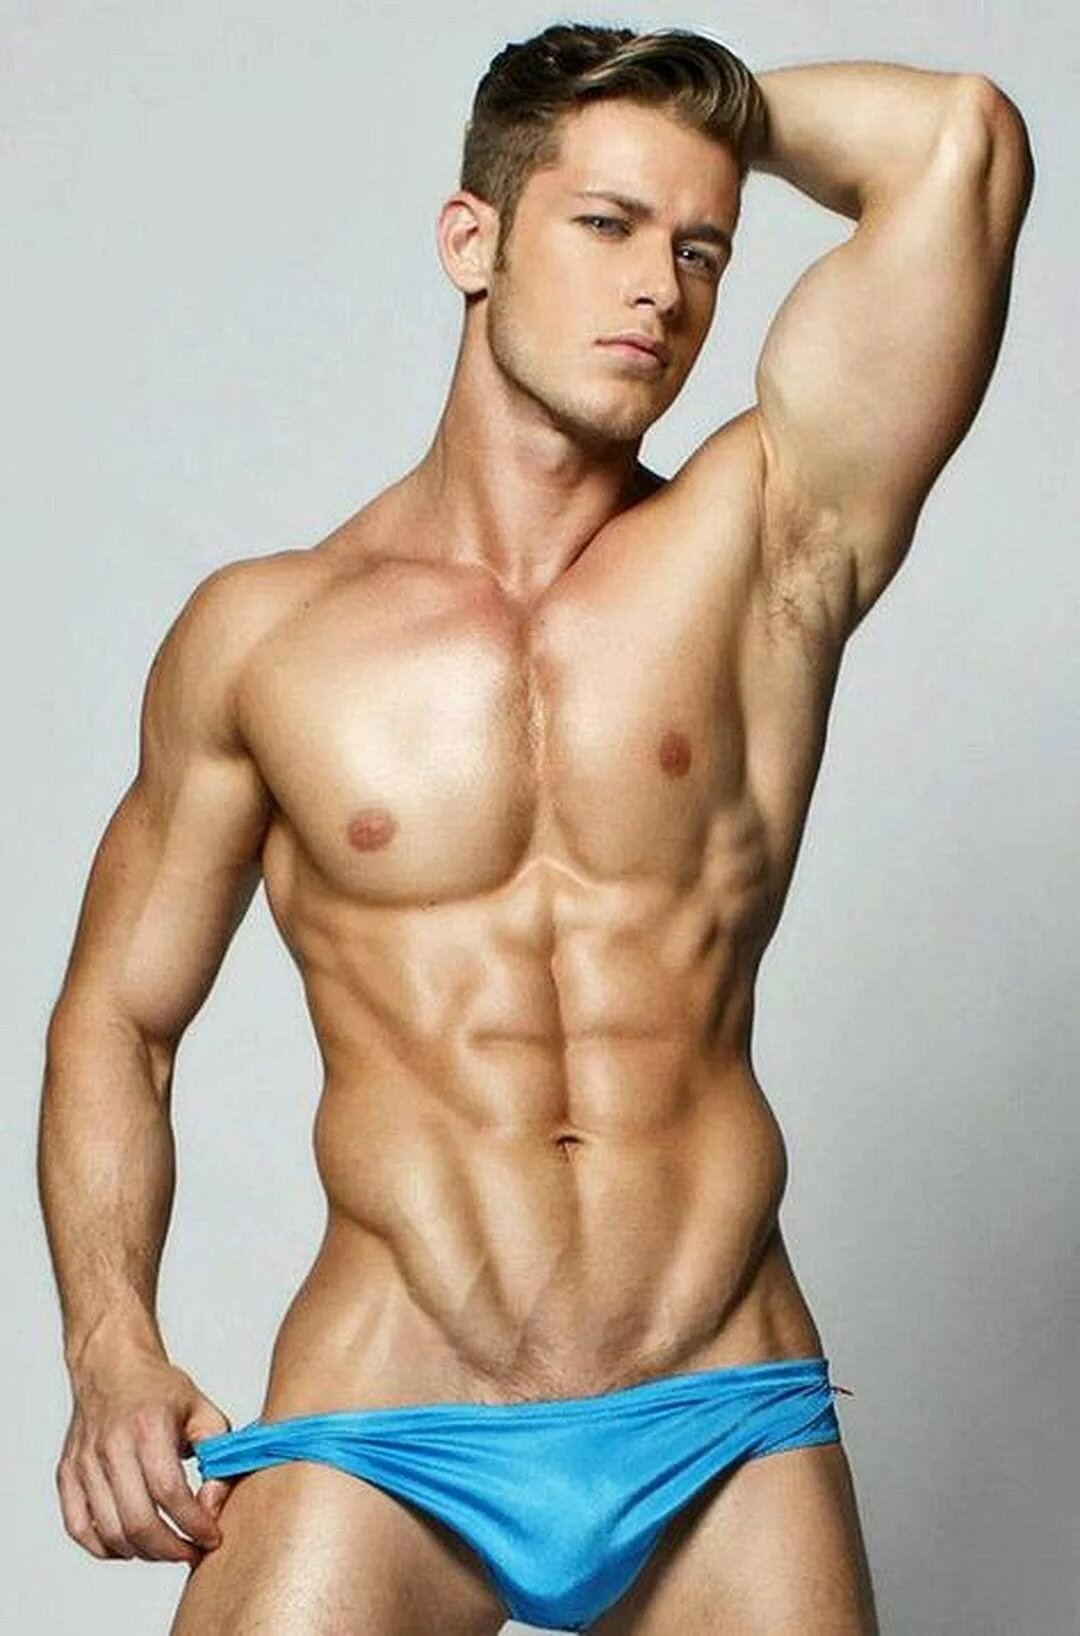 Nude Male Straight